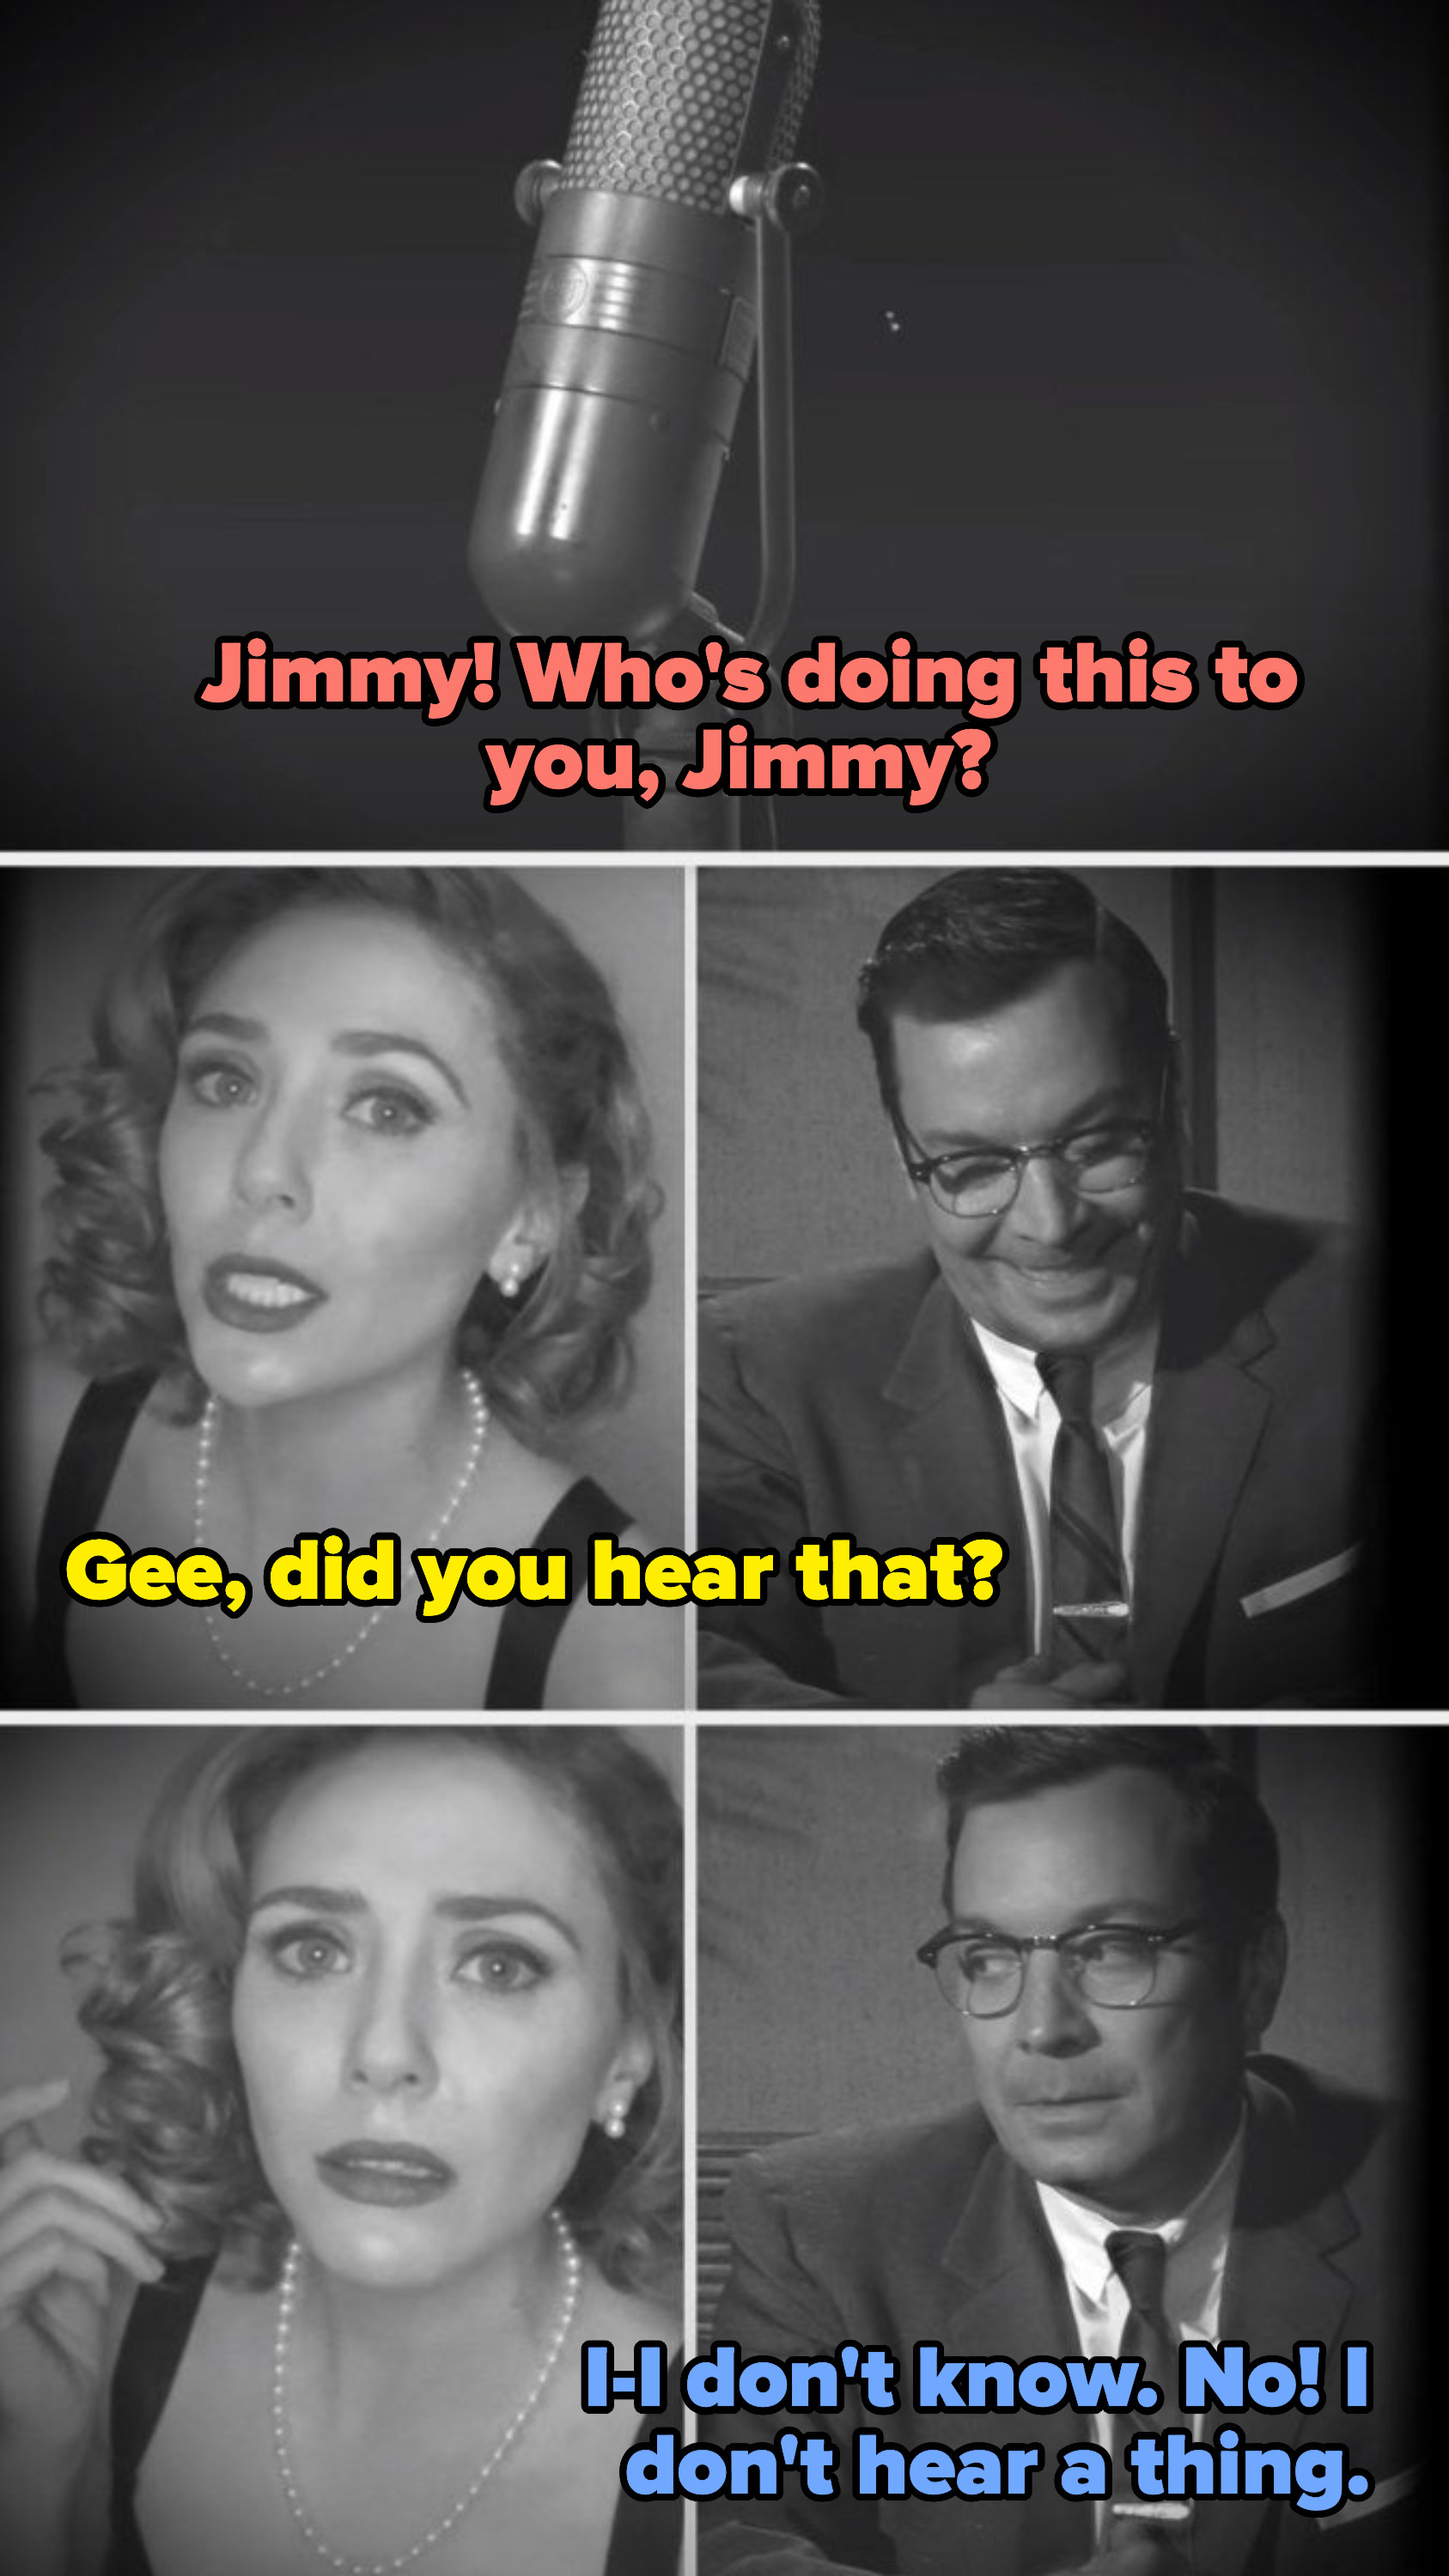 A voice asking Jimmy who is doing this, Elizabeth asking if he heard, and Jimmy saying no